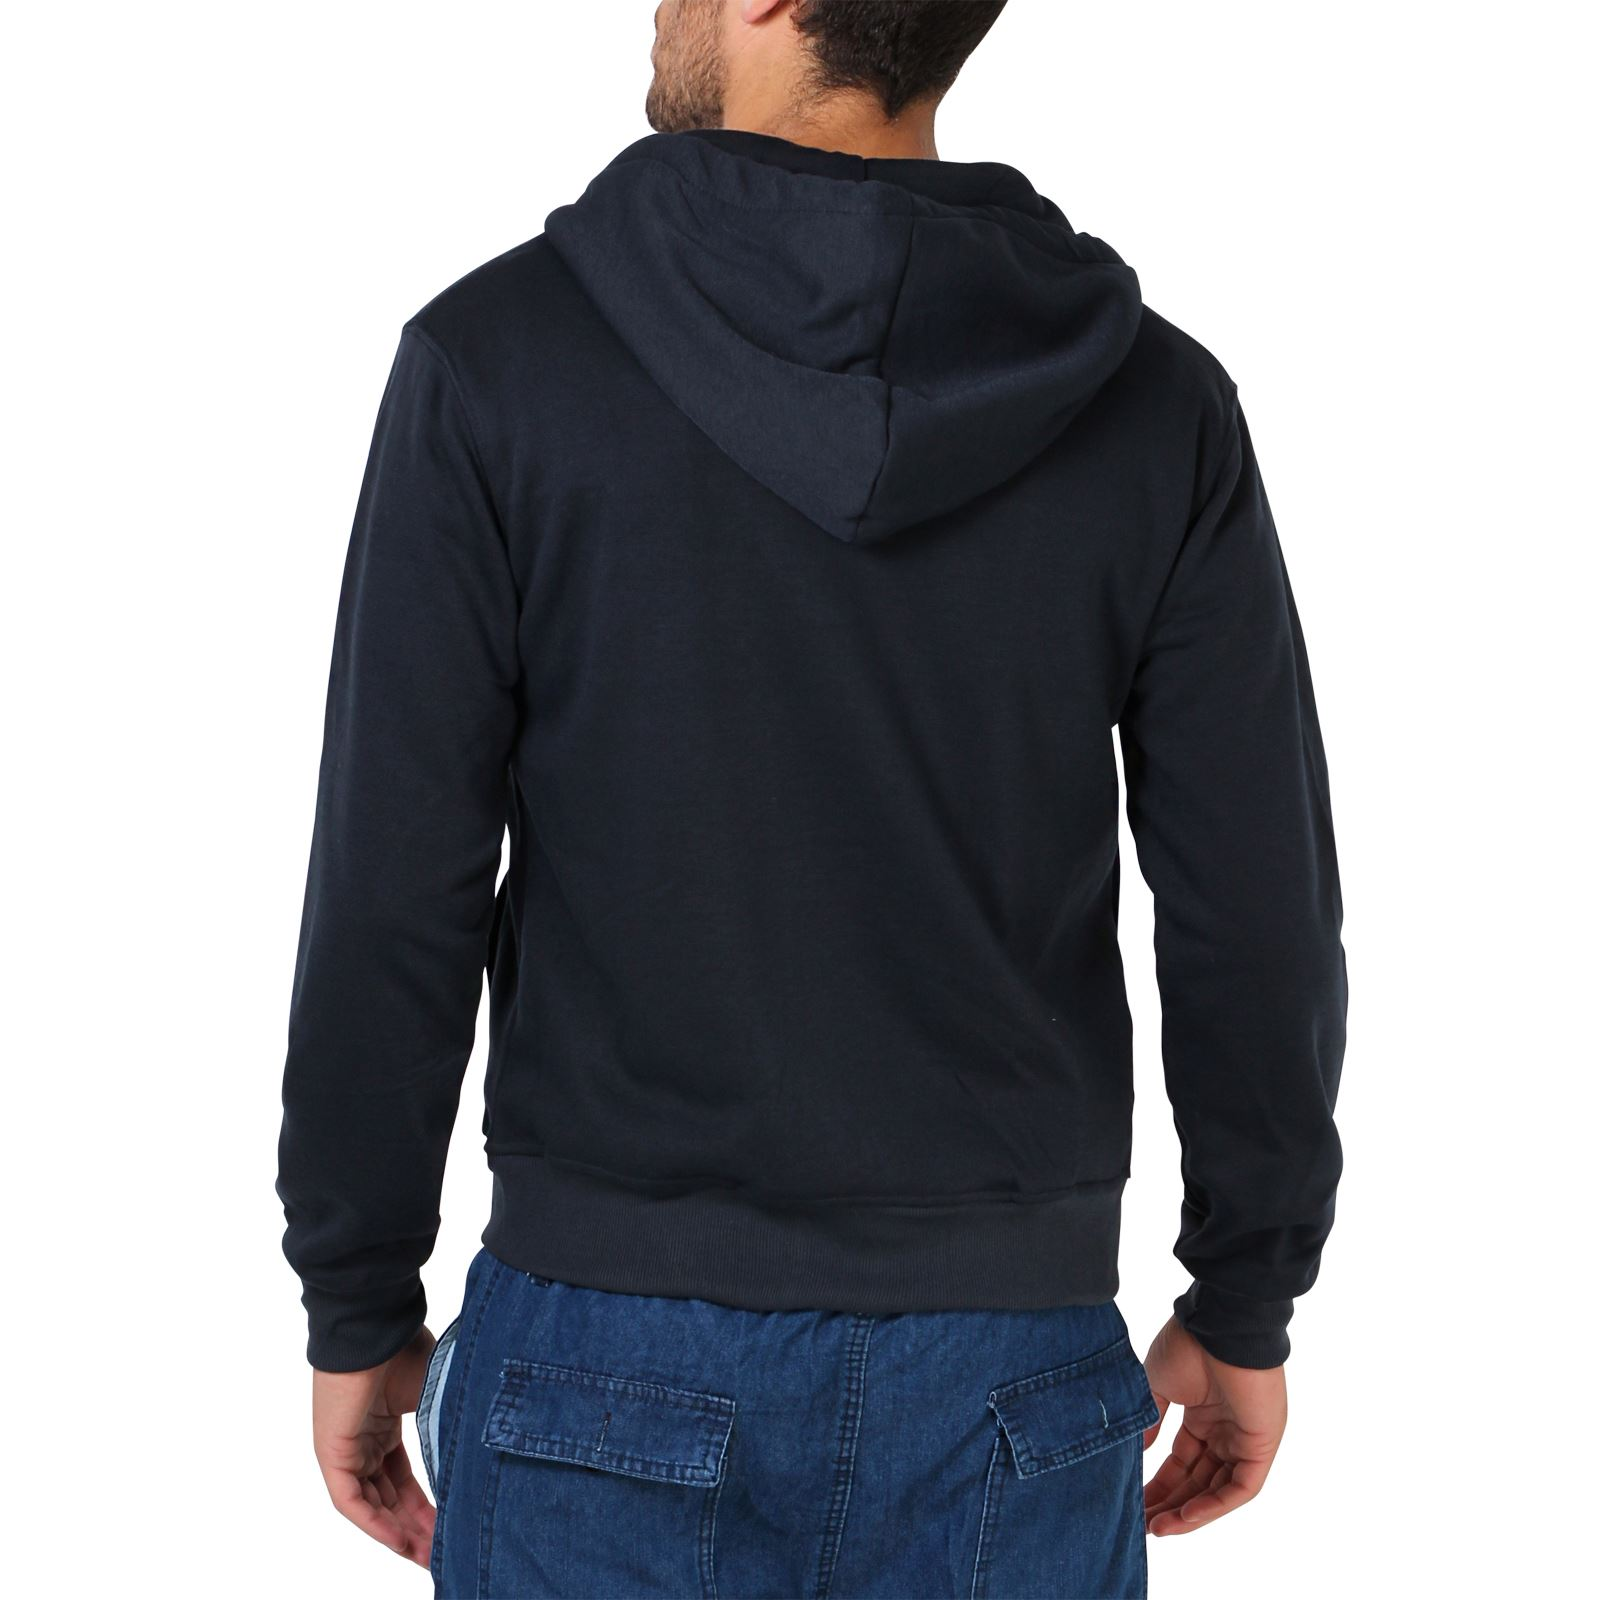 Free shipping and returns on Men's Cotton & Cotton Blend Sweatshirts & Hoodies at universities2017.ml